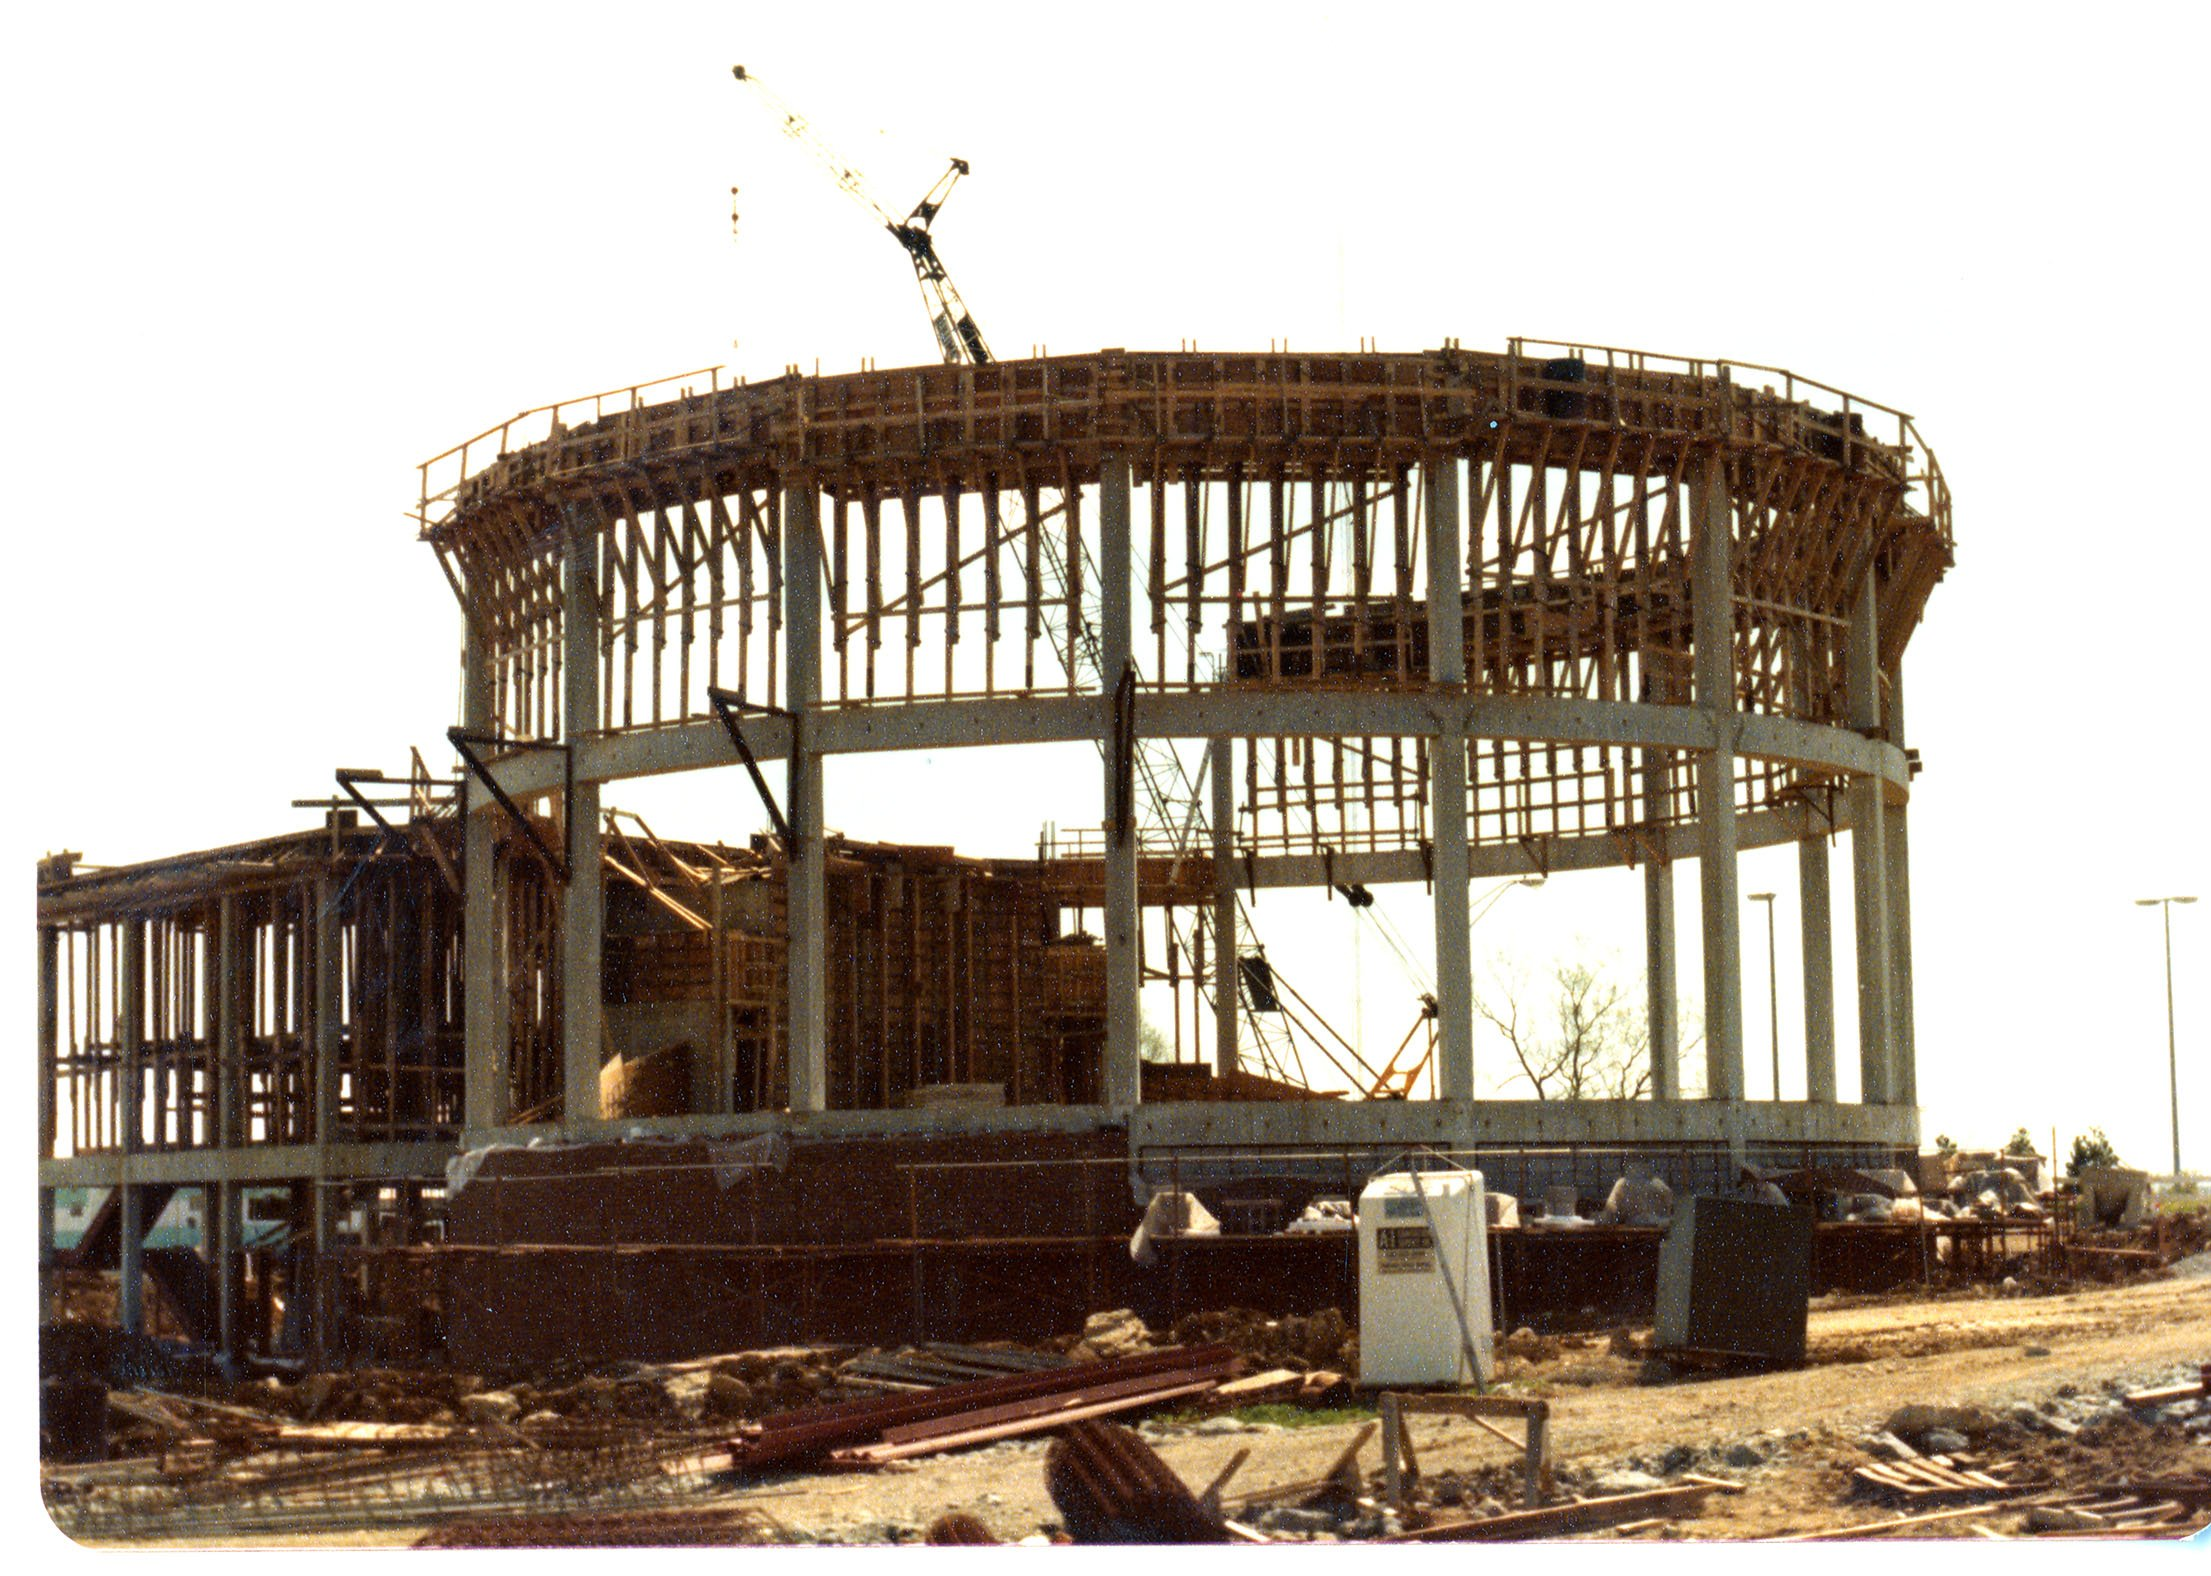 Construction of the Hummel Planetarium, ca. 1978. EKU Photograph Collection.